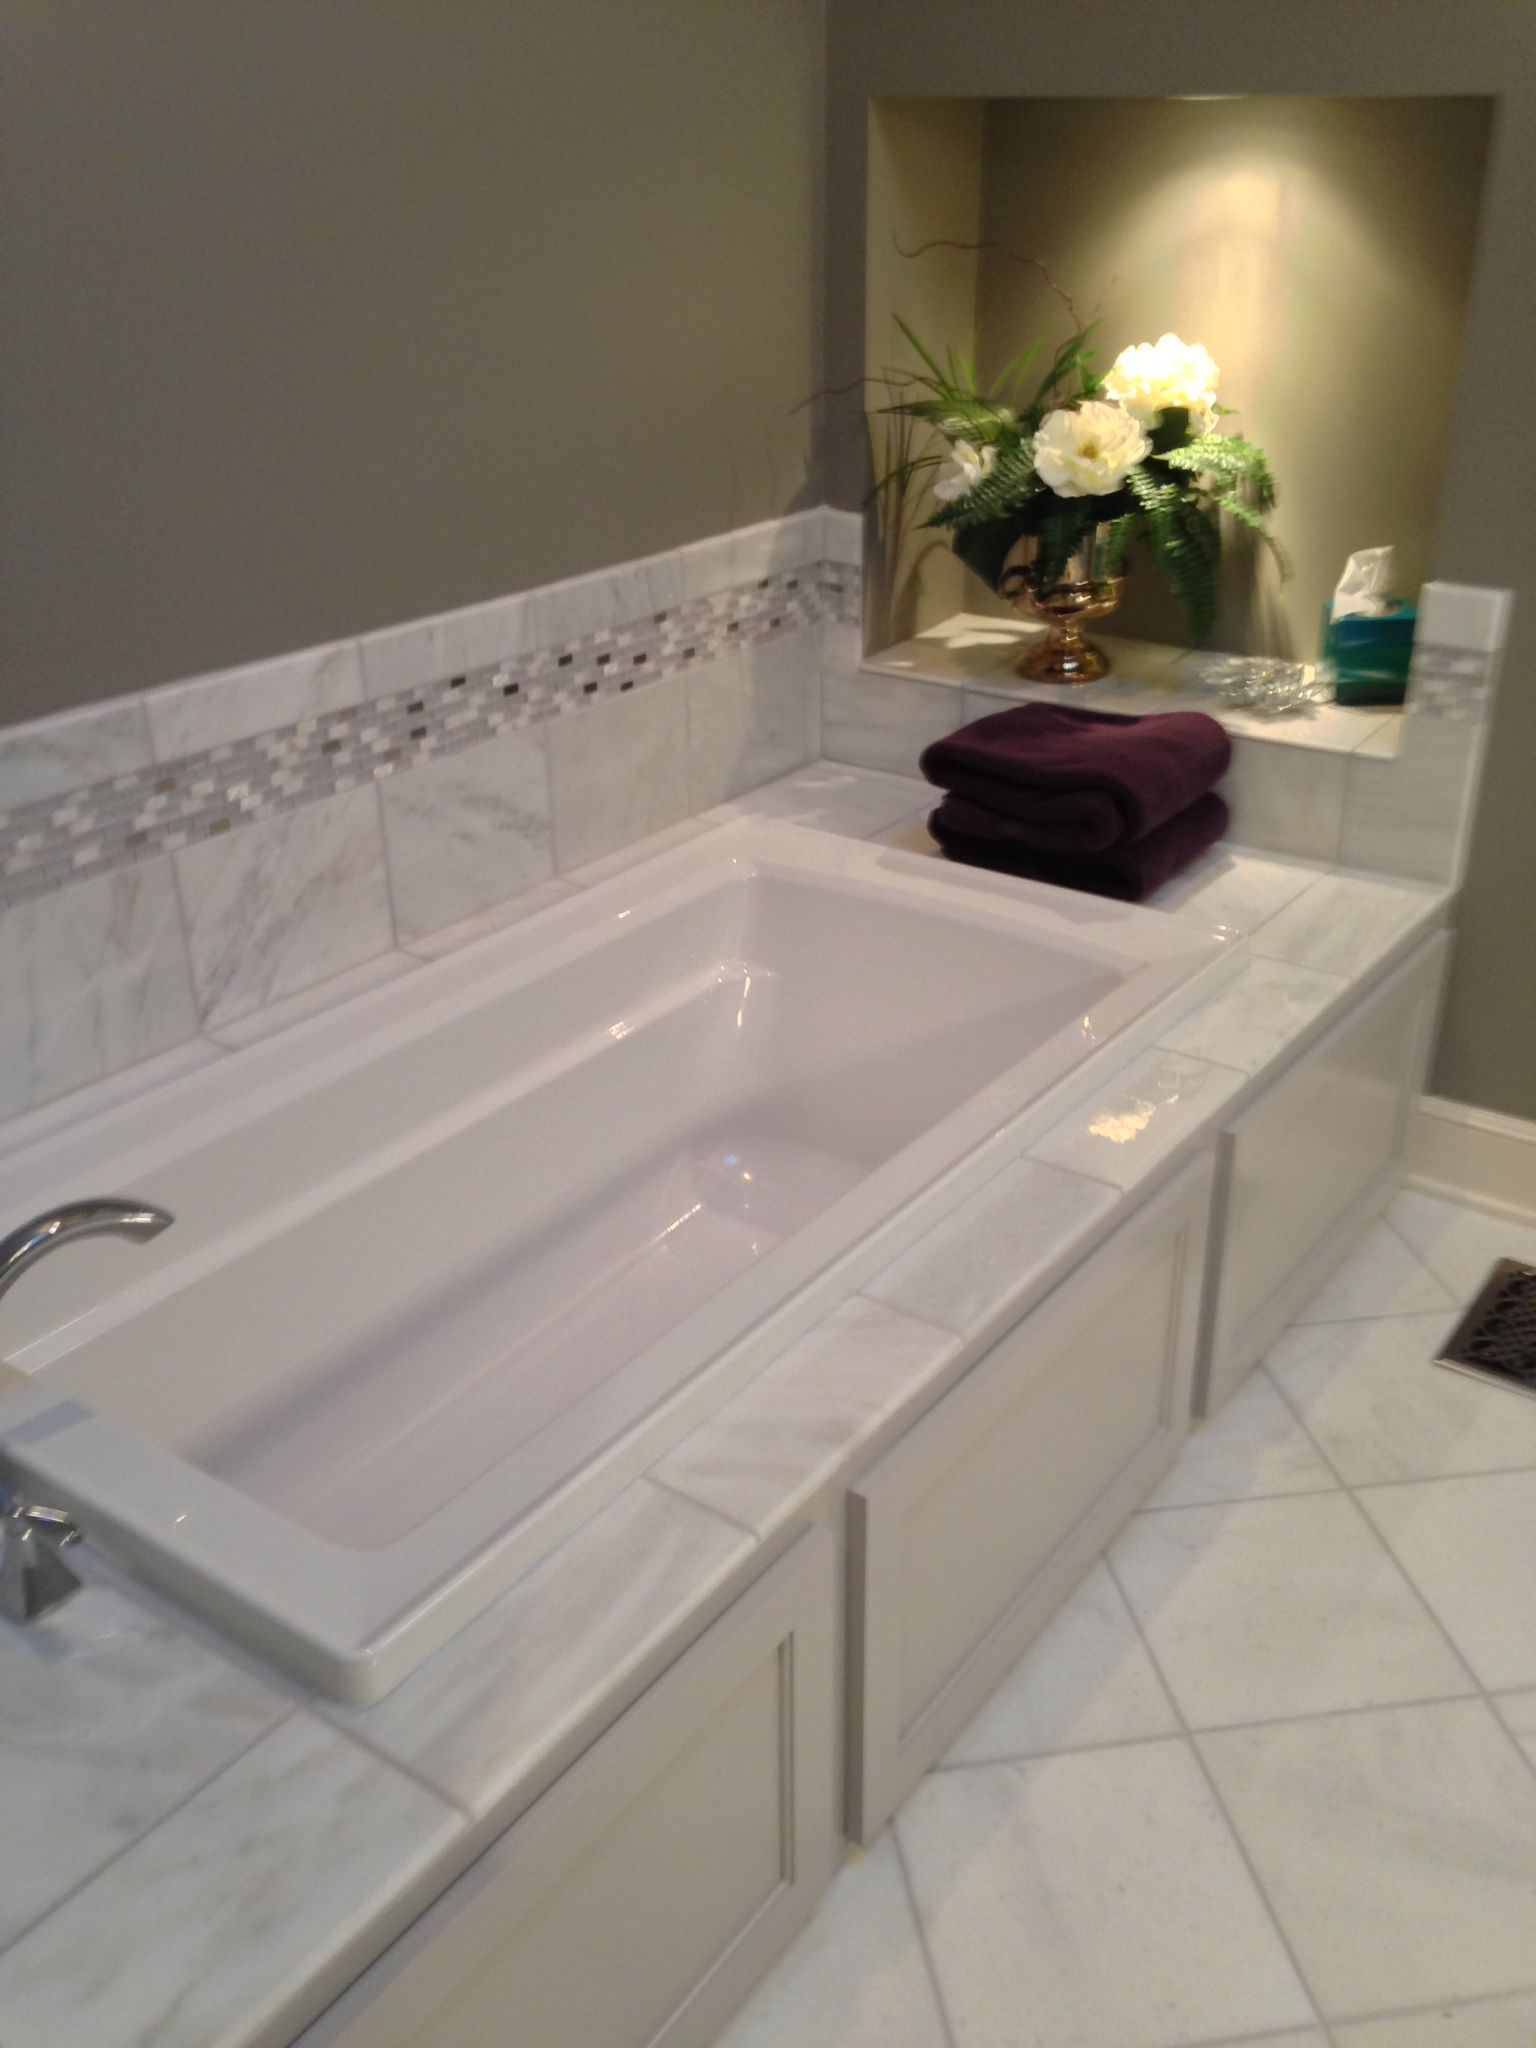 Drop In Jacuzzi Bath Tub With Tile Backsplash And Cabinet Space